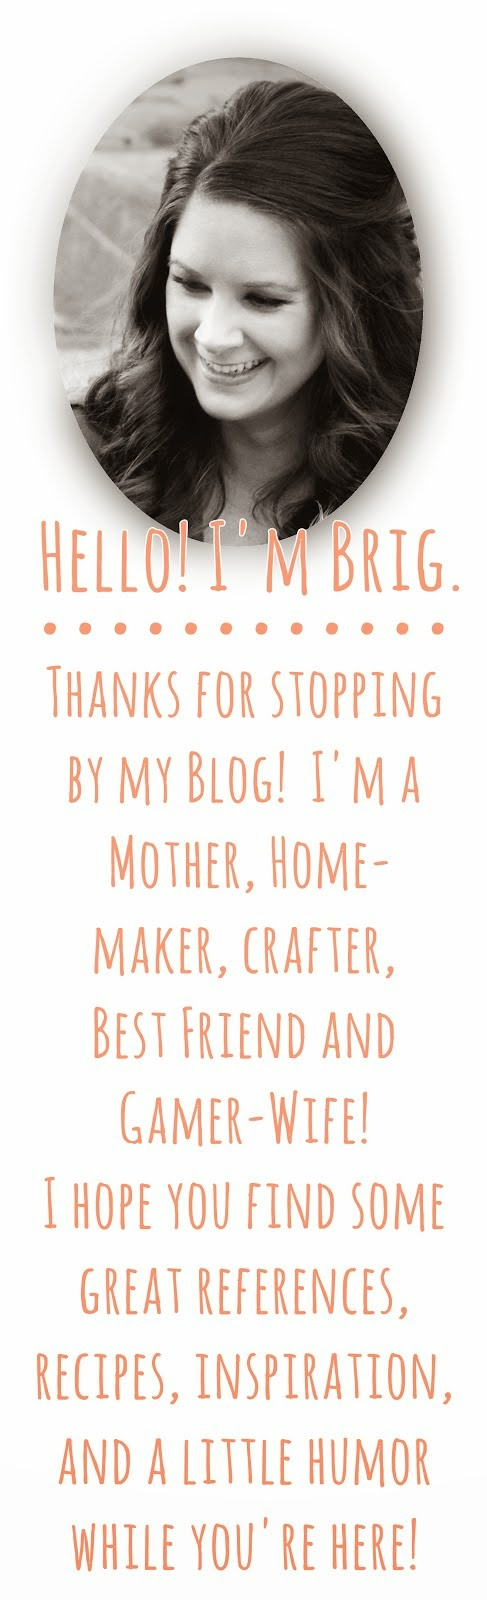 Welcome to the Bitty Birdie Blog!